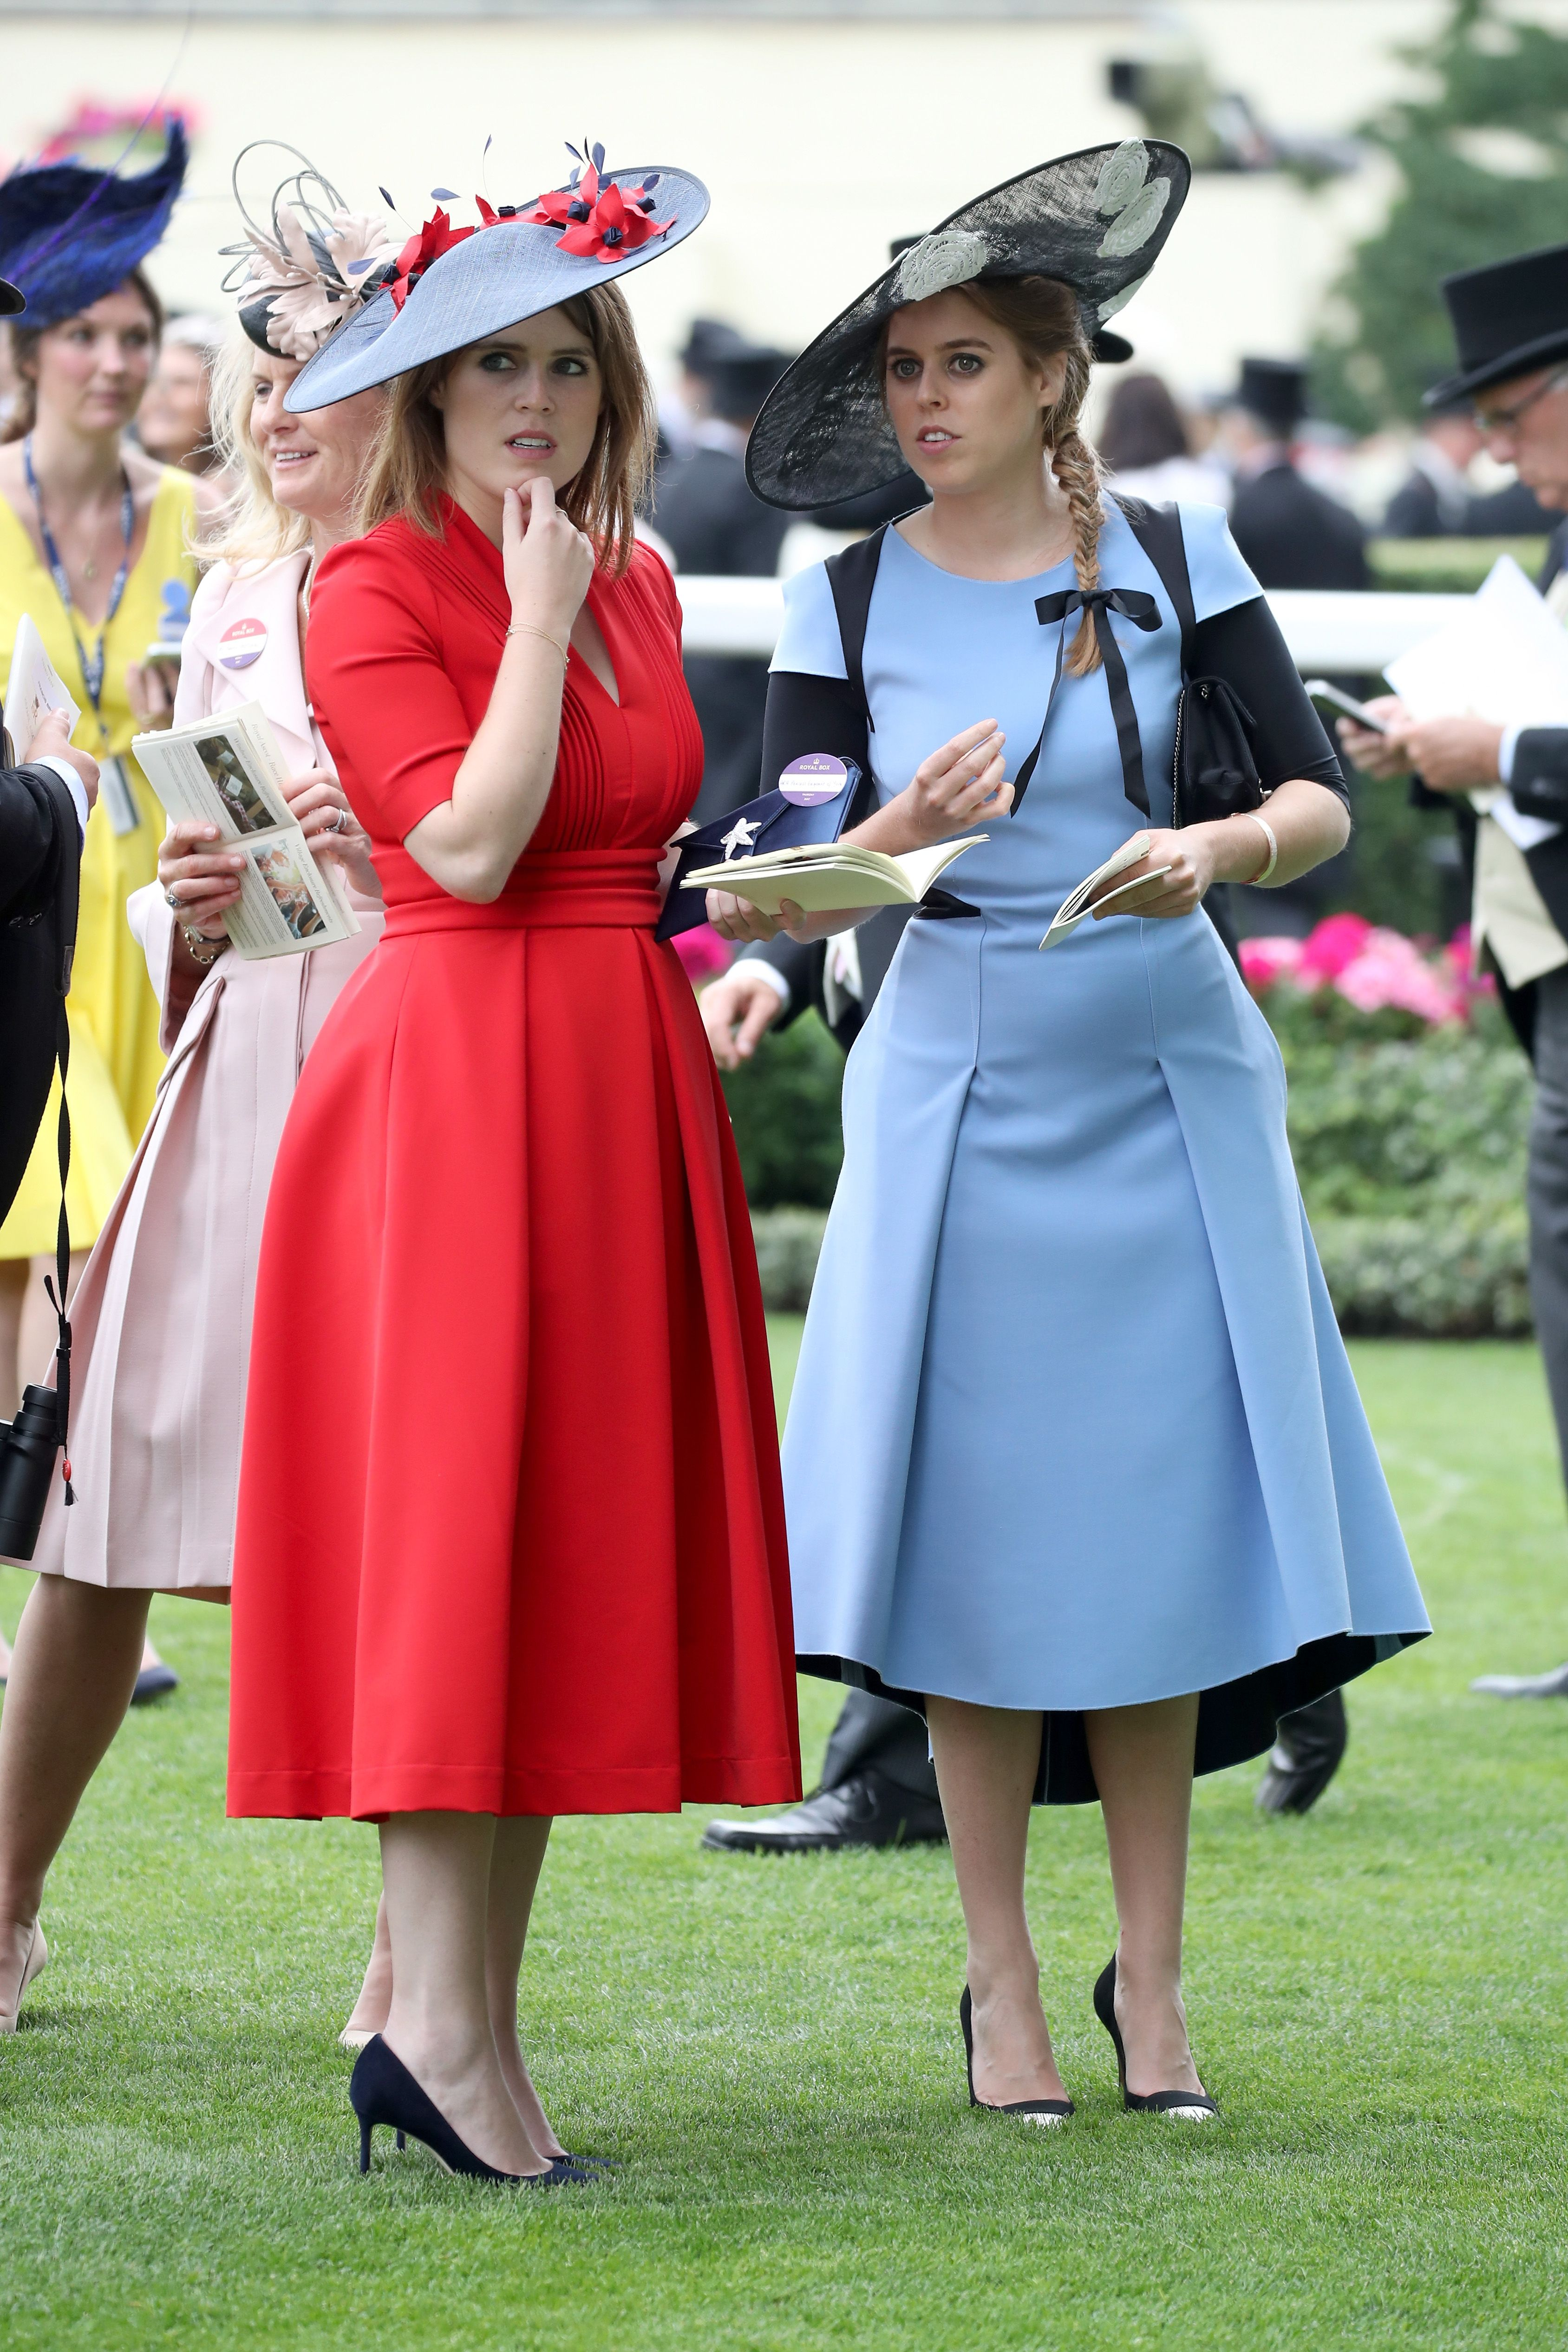 Princess Eugenie and Princess Beatrice of York at the Ascot Racecourse on June 22, 2017, in England | Photo: Chris Jackson/Getty Images